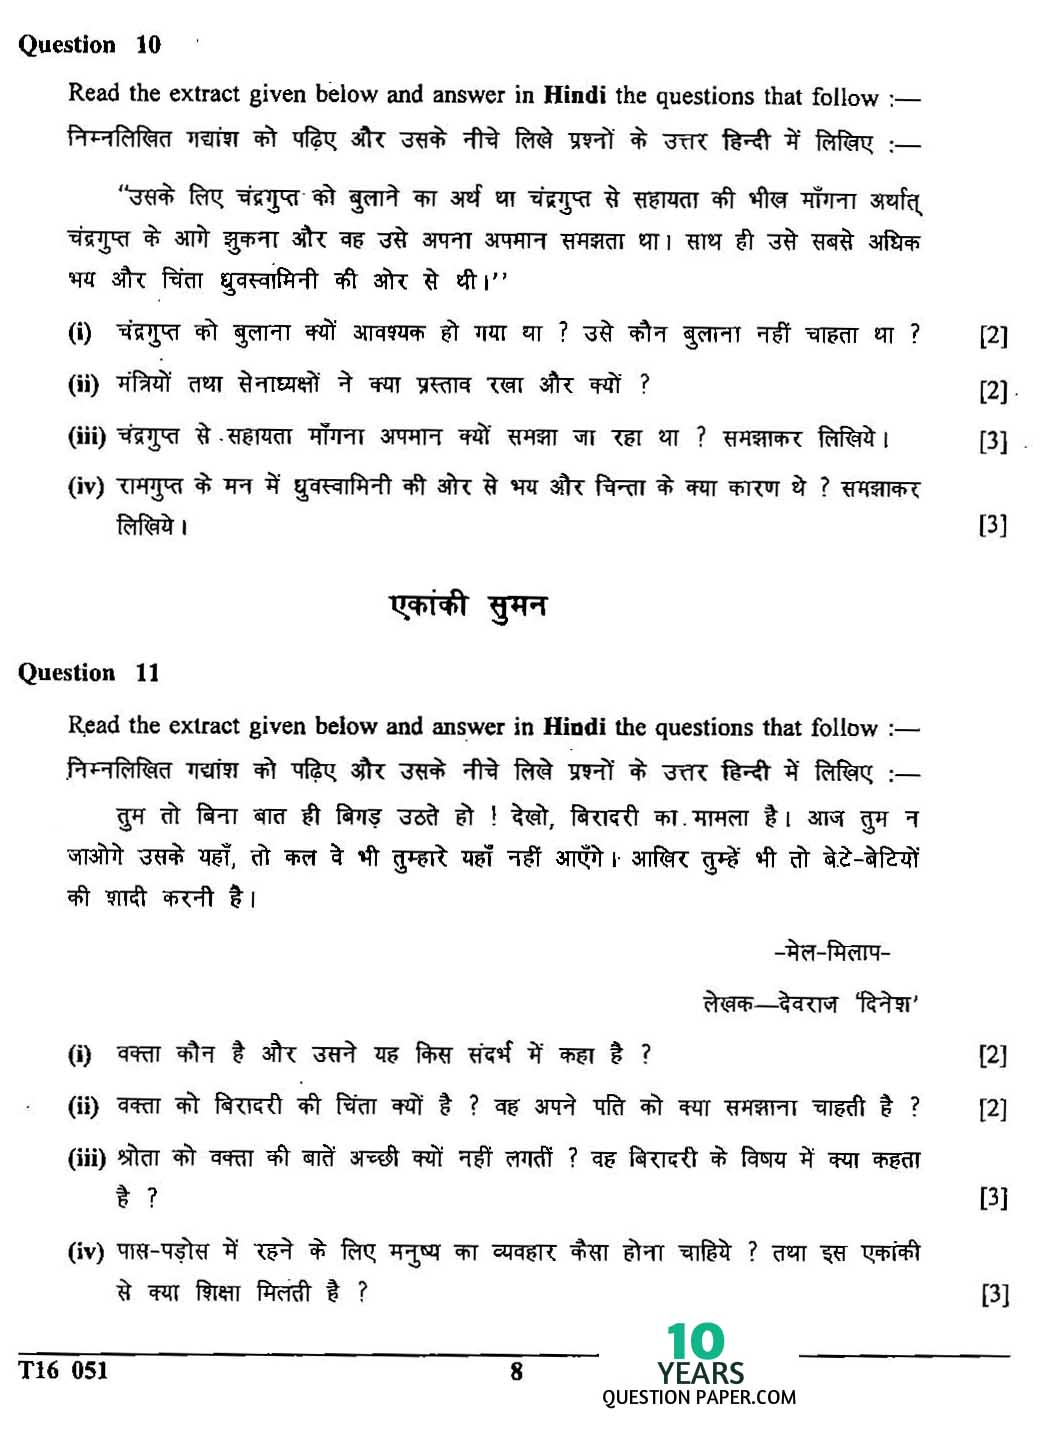 Worksheet Comprehension Passages For Grade 3 With Questions And Answers comprehension passages for class 7 with questions practice math worksheet grade icse class